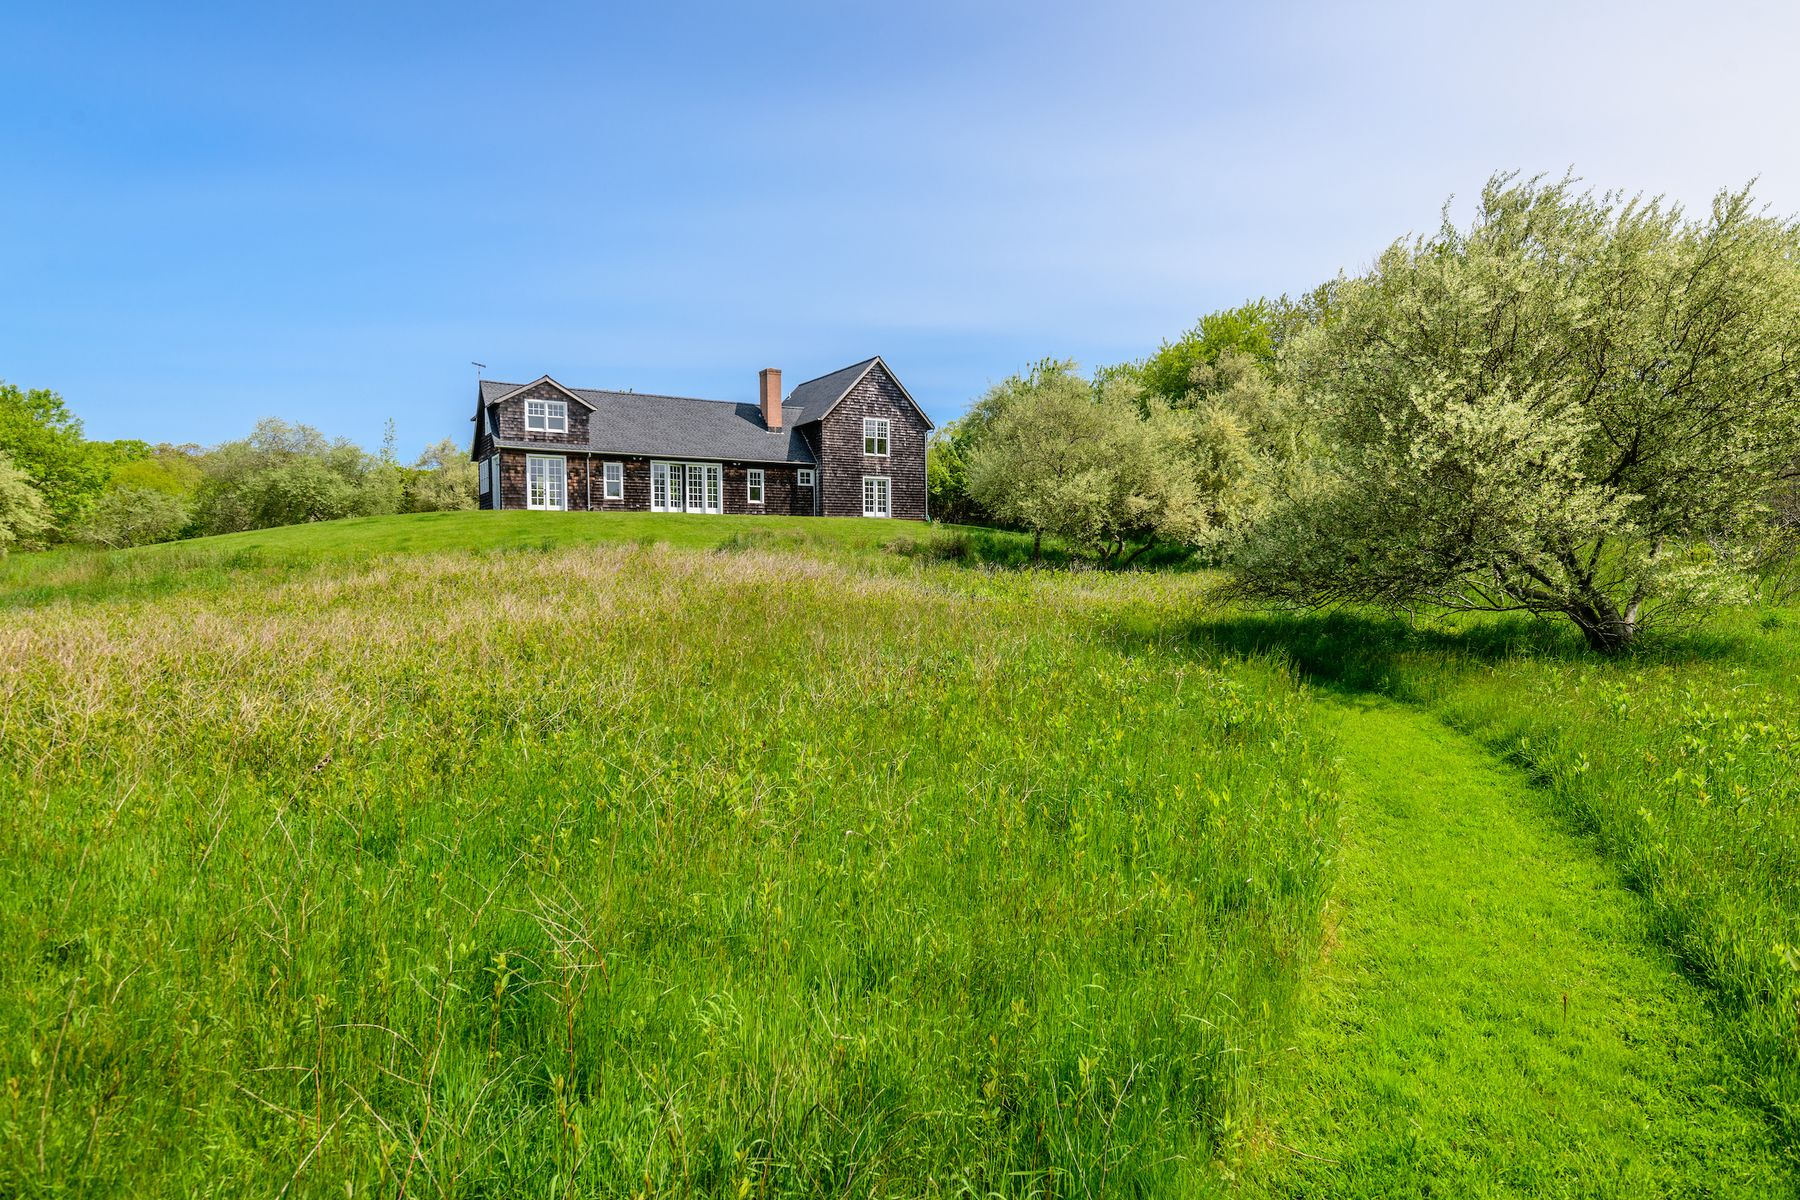 Single Family Homes for Sale at Private European-style Barn on 5 Acres 87 Day Lily Lane Bridgehampton, New York 11932 United States